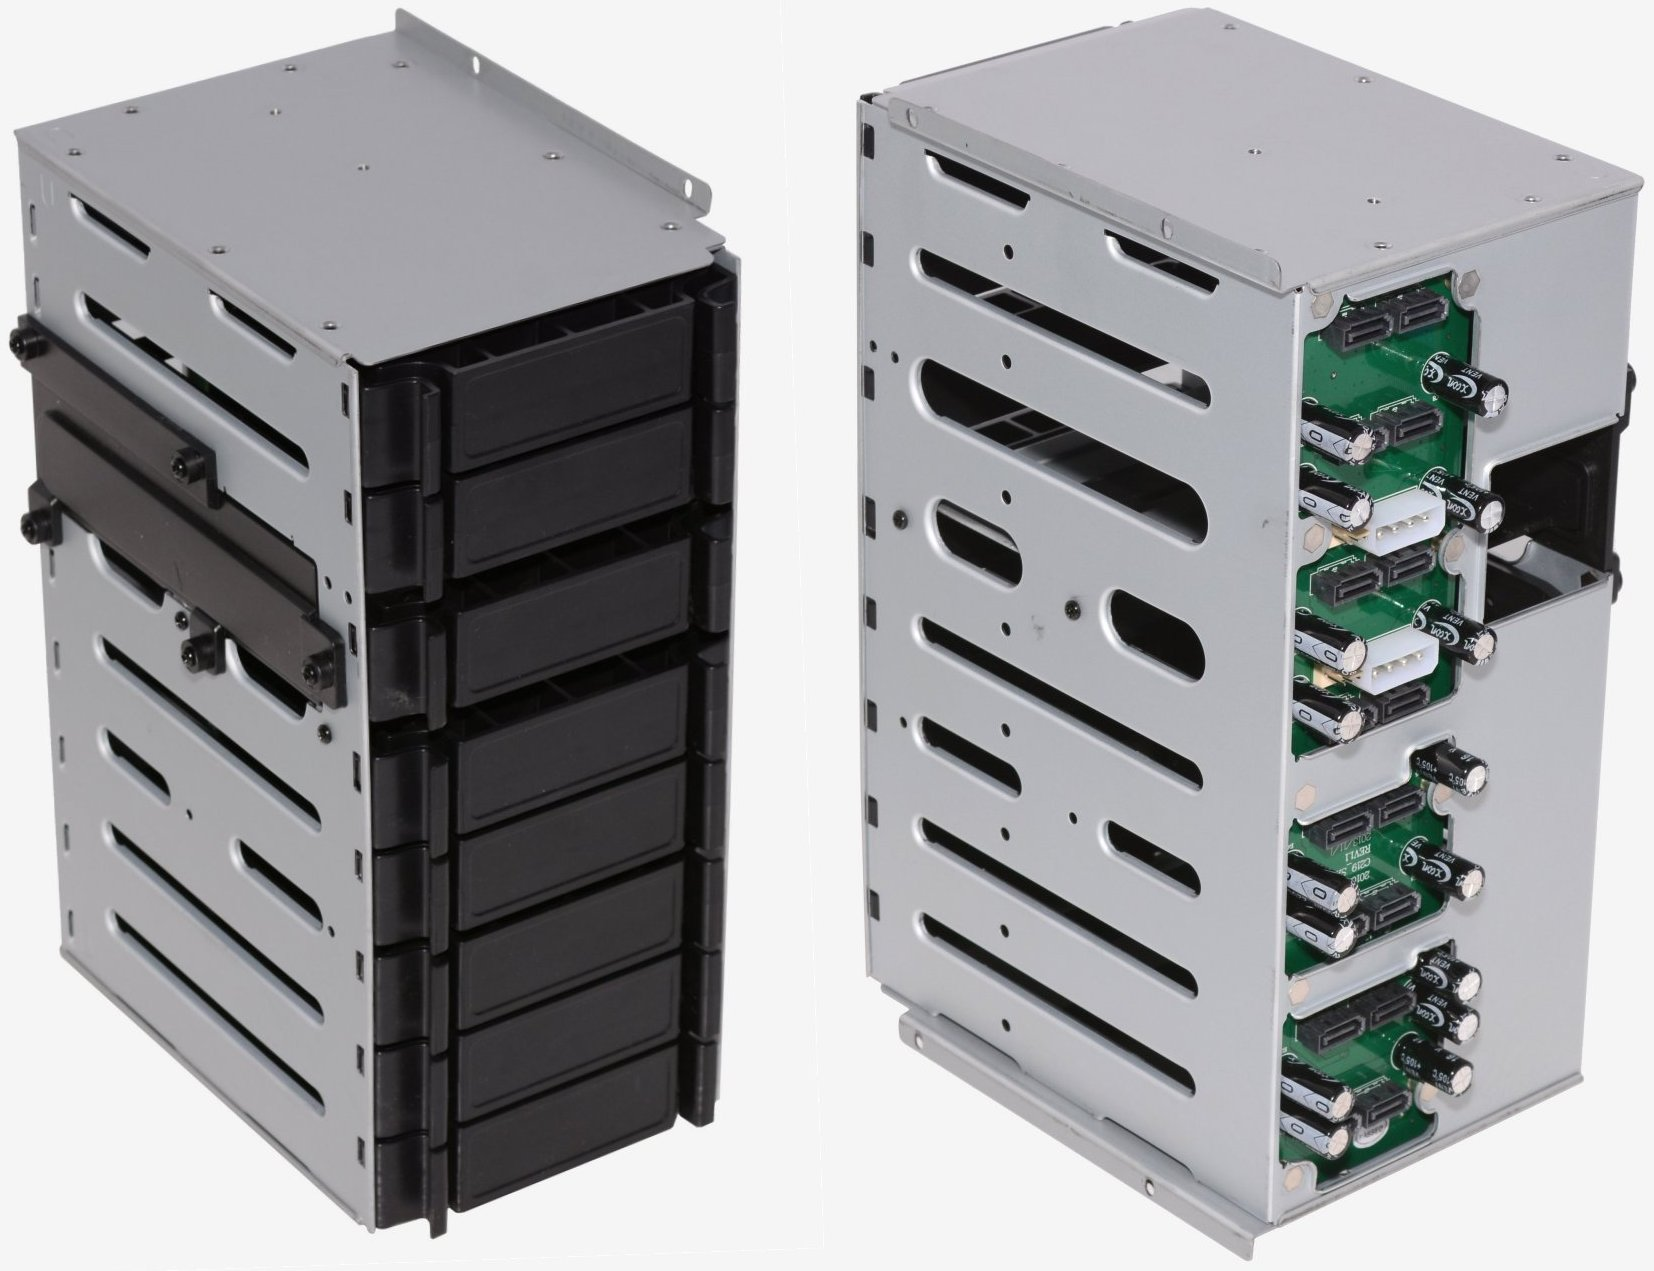 Building Your Own NAS: Silverstone DS380 Chassis Tested, Reviewed > DS380 Internals - TechSpot